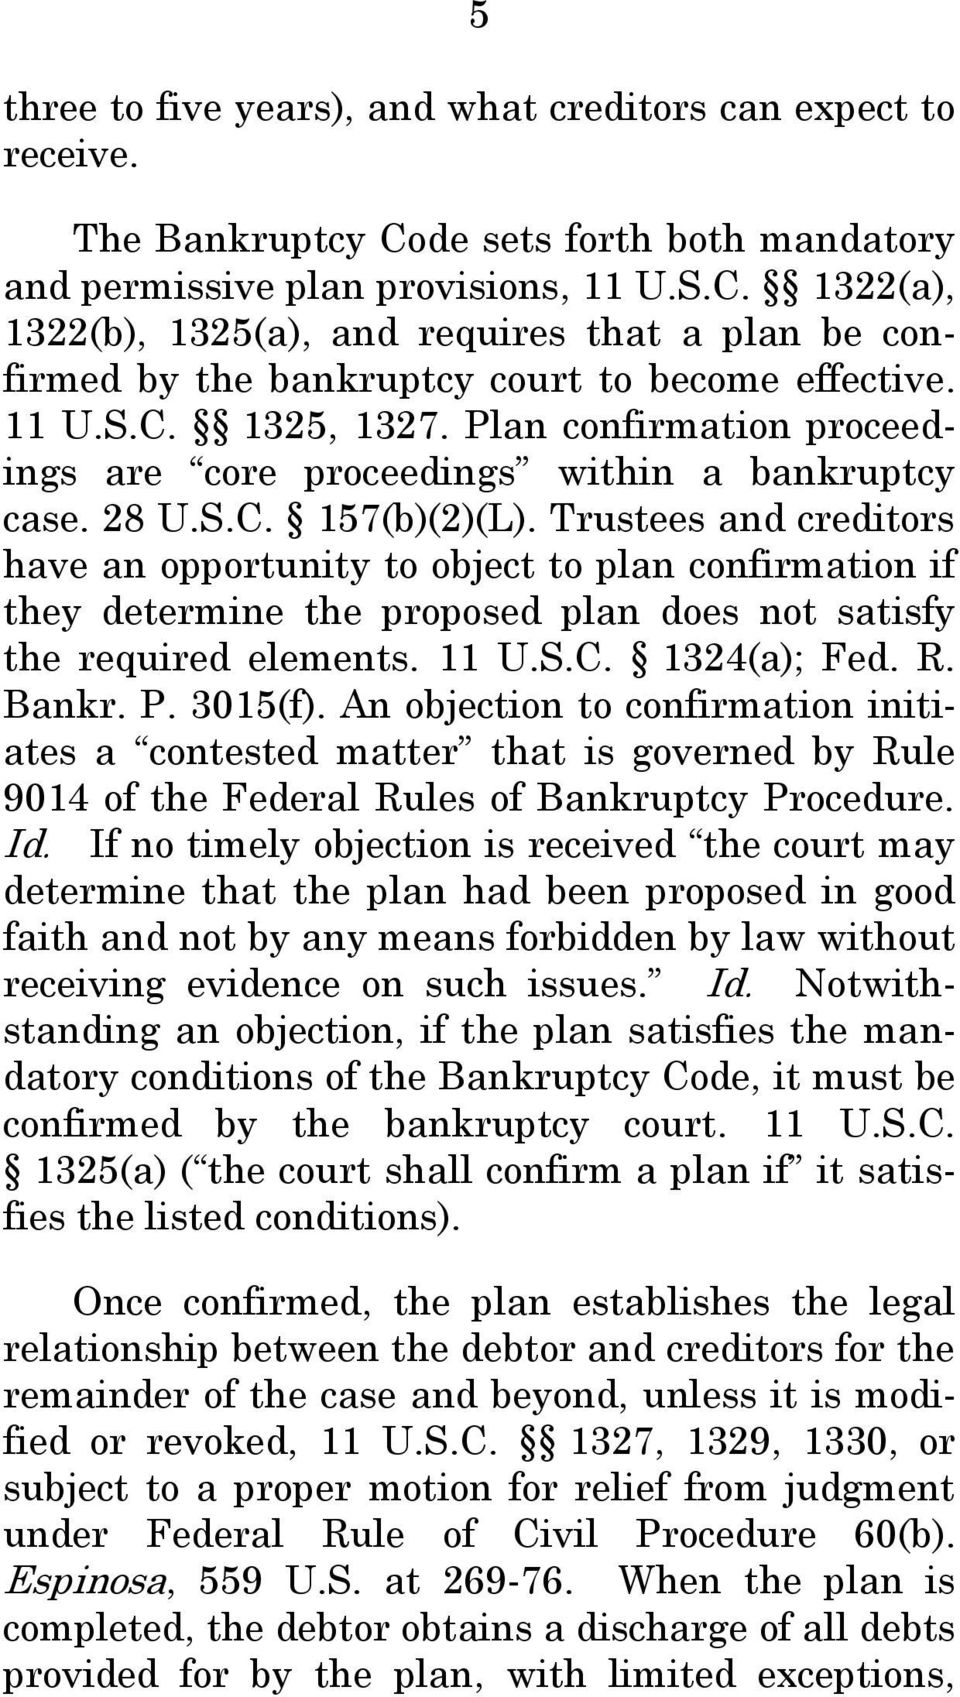 Trustees and creditors have an opportunity to object to plan confirmation if they determine the proposed plan does not satisfy the required elements. 11 U.S.C. 1324(a); Fed. R. Bankr. P. 3015(f).